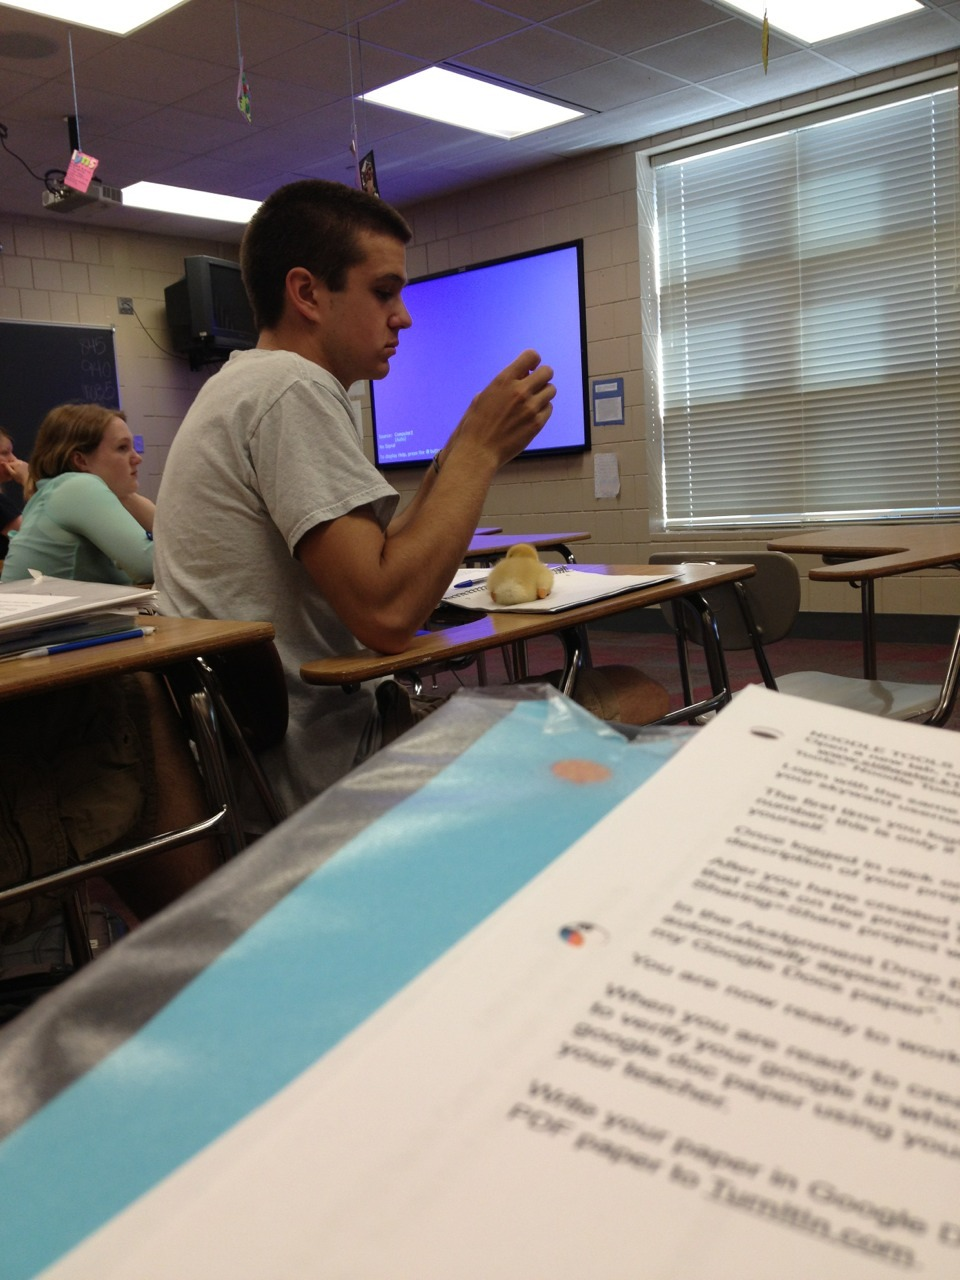 teenytigress:   SO THIS GUY IN MY ENGLISH IS DOING A PROJECT FOR BIO WHERE HE GETS A DUCKLING TO IMPRINT ON HIM SO HE JUST CARRIES IT AROUND WITH HIM TO ALL OF HIS CLASSES AND I SWEAR THIS DUCK IS THE MOST WELL BEHAVED FUCKING POULTRY IVE EVER SEEN IT JUST SITS ON HIS DESK QUIETLY AND SOMETIMES HE PUTS IT IN HIS POCKET AND IT JUST SLEEPS LIKE WOW YOU GO DUCKY   Wtf!!!!???? I need one! A pocket duck!